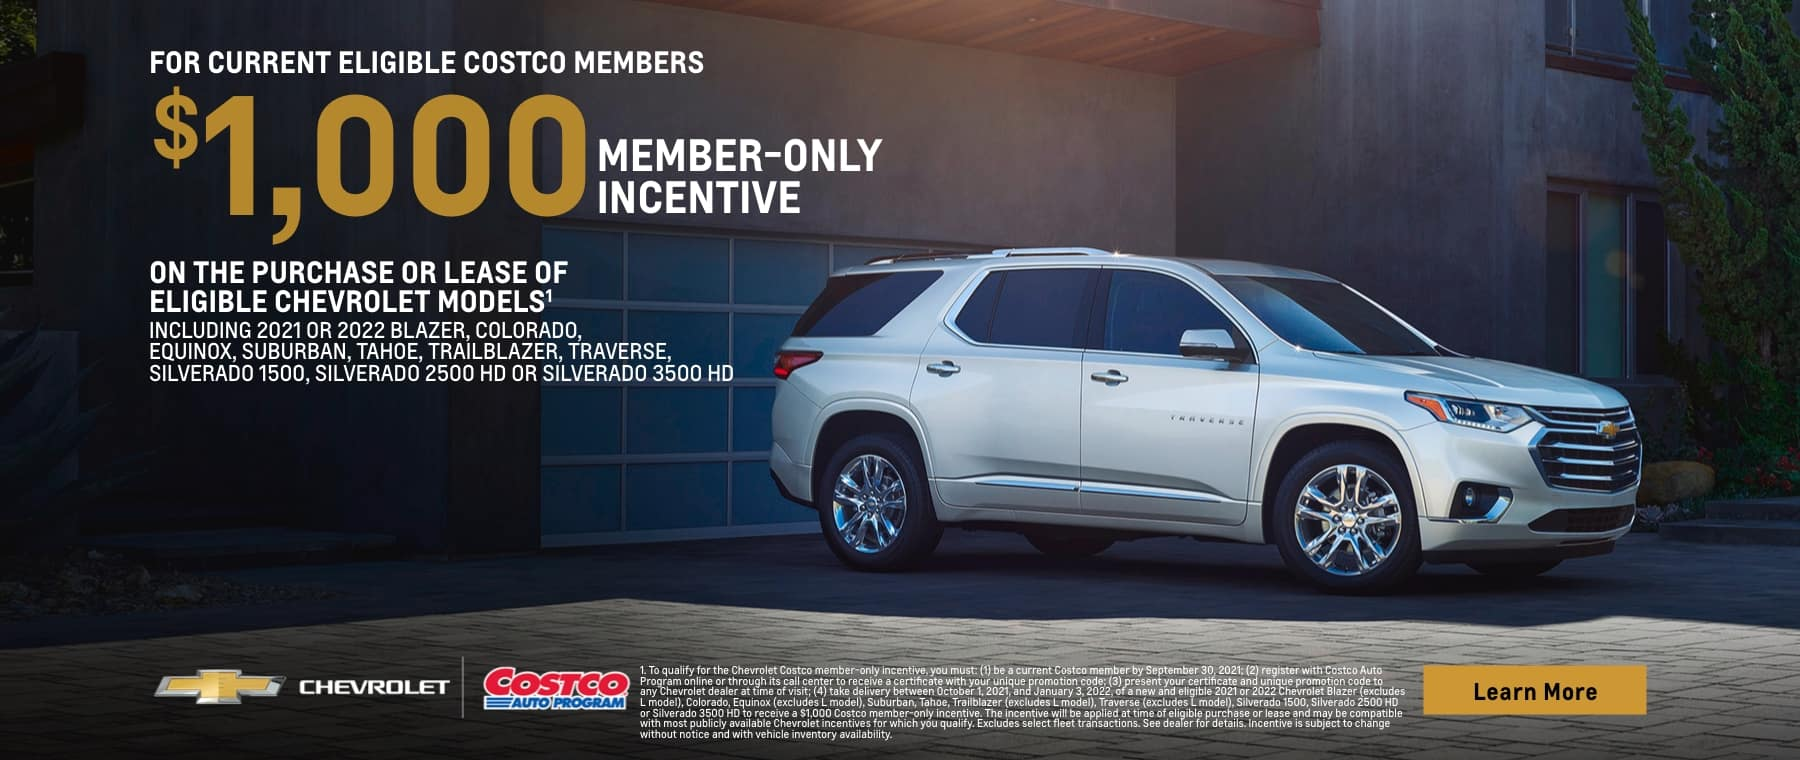 $1,000 member-only incentive